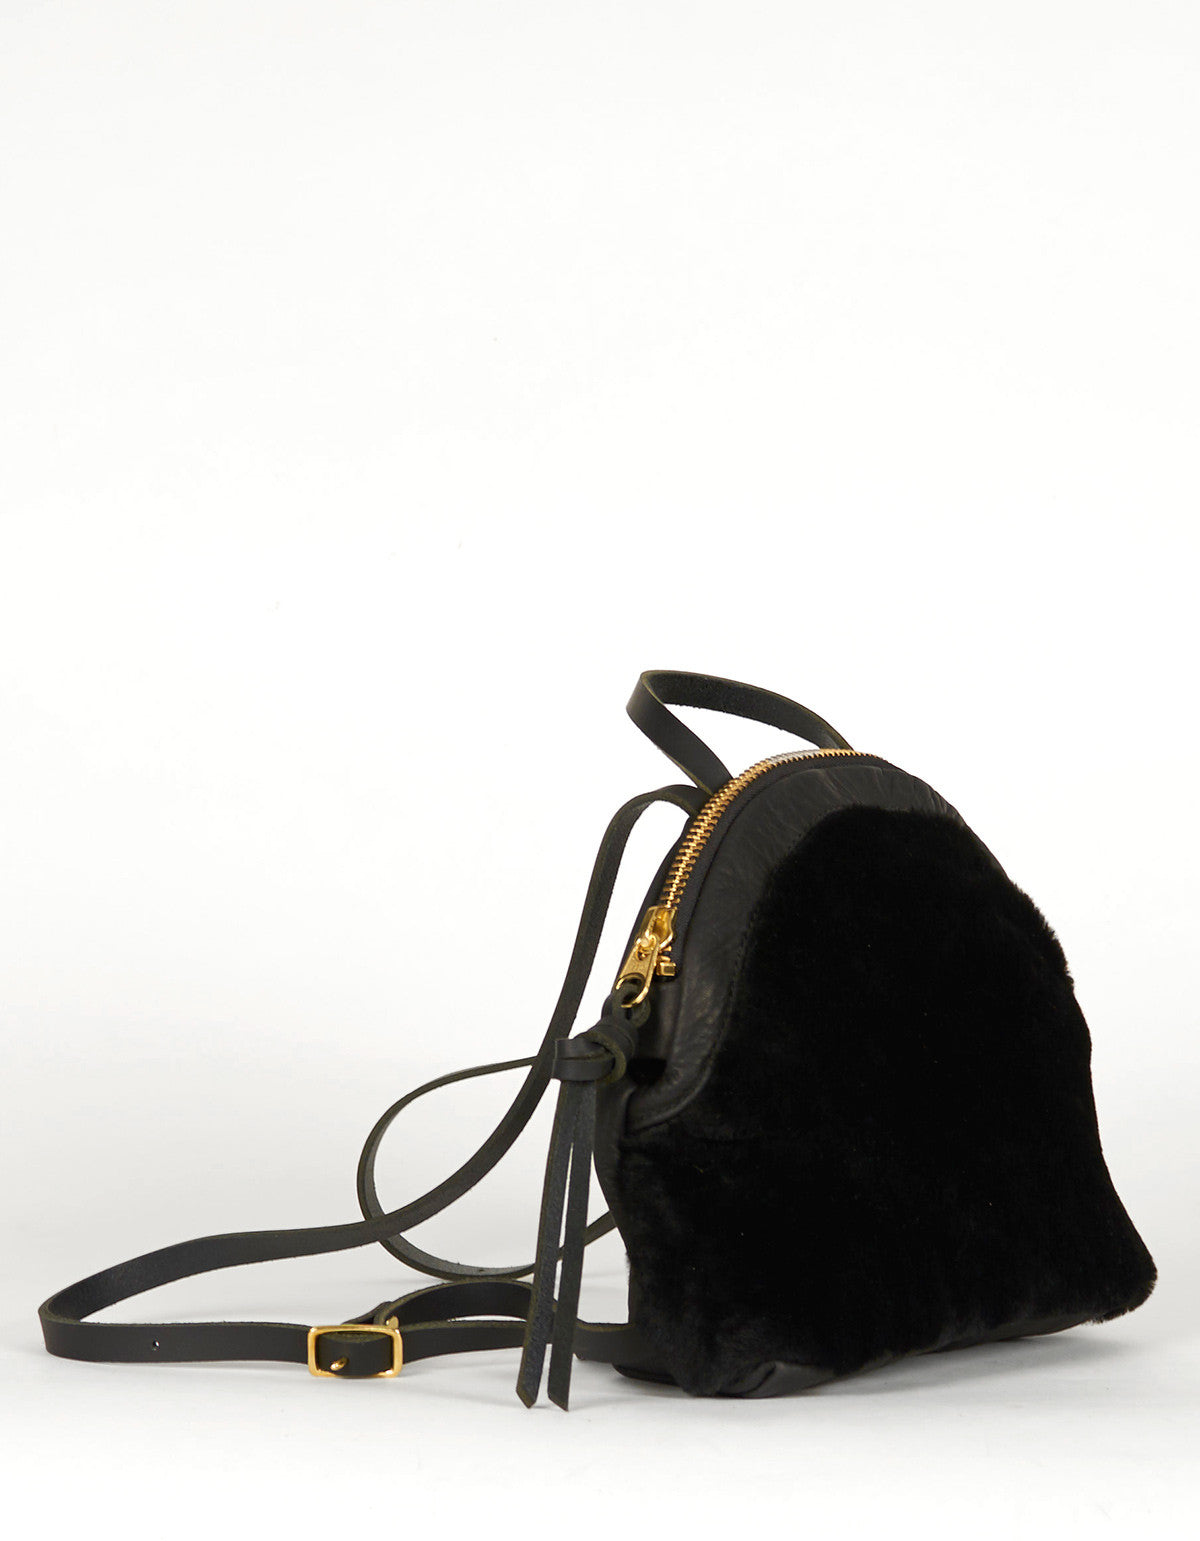 Eleven Thirty Anni Mini Backpack Black Shearling - Still Life - 4